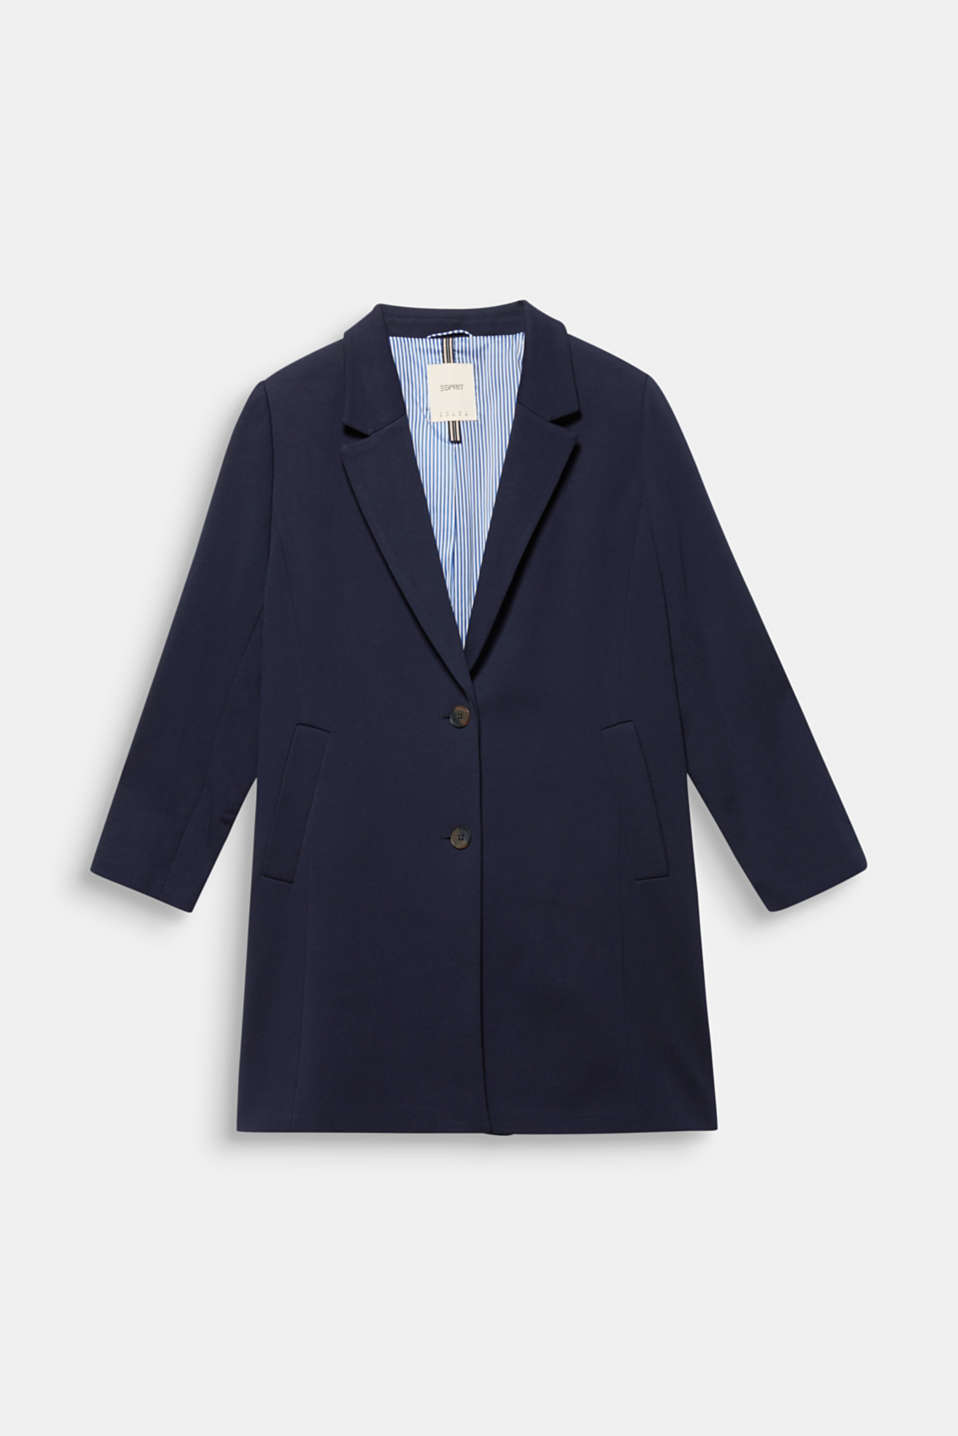 CURVY jersey coat with a striped lining, NAVY, detail image number 6